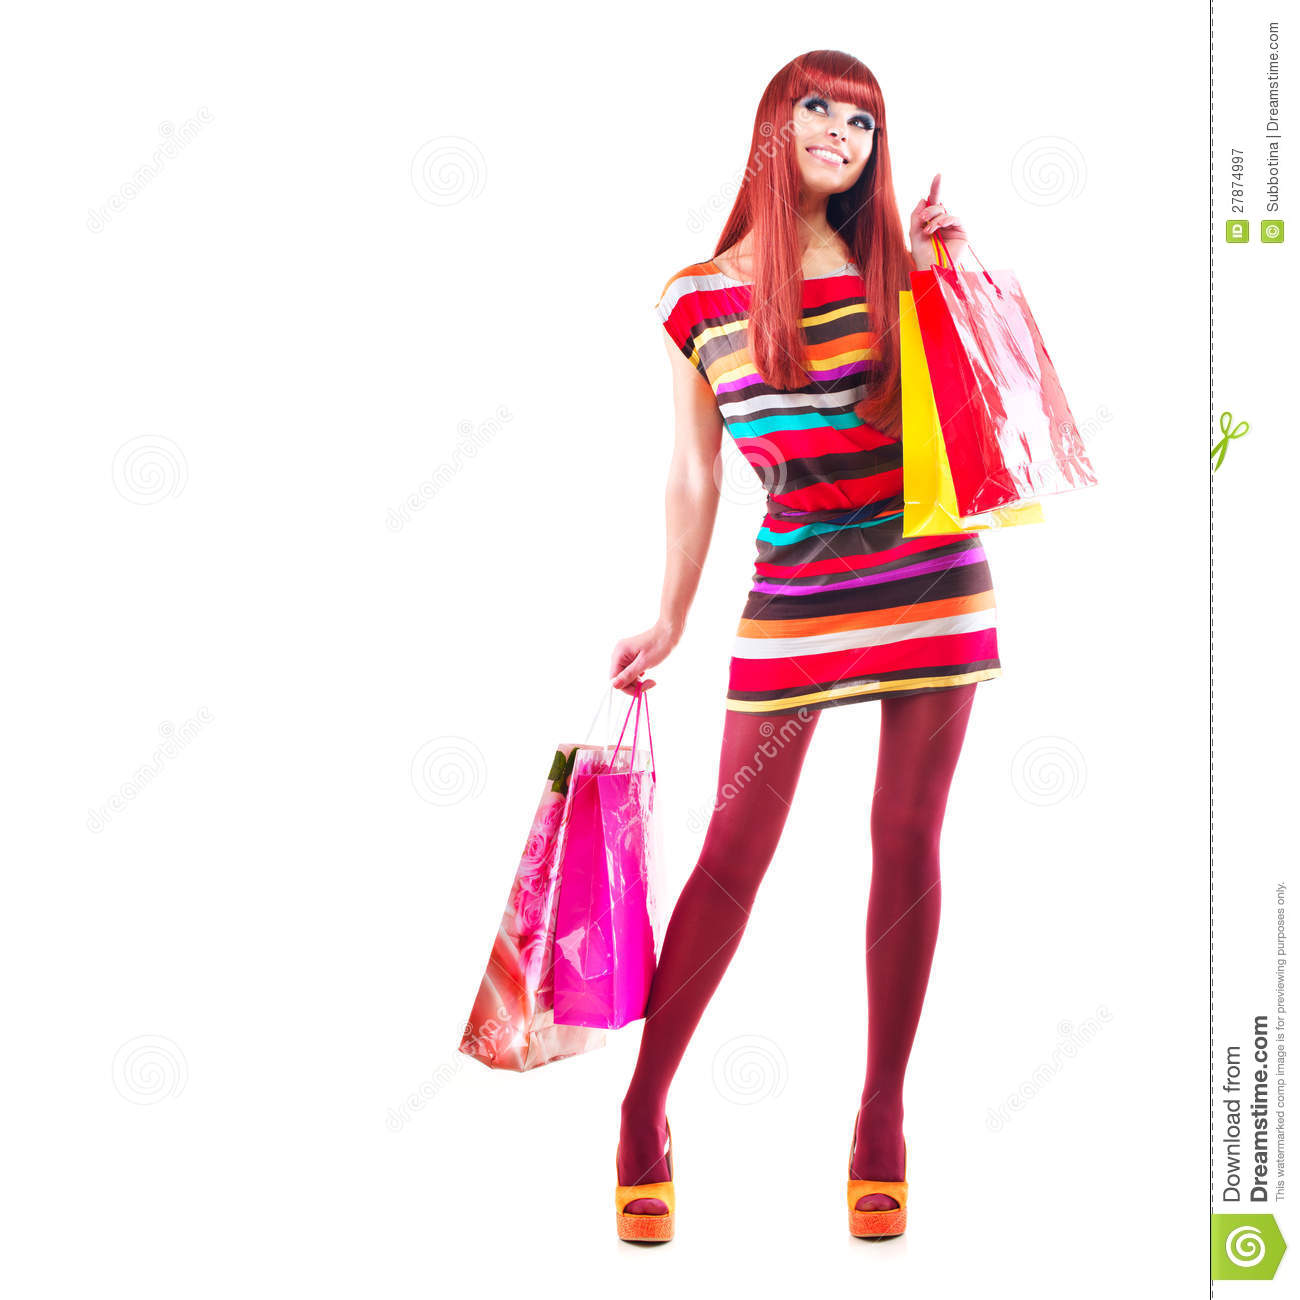 fashion shopping girl stock image image of lifestyle